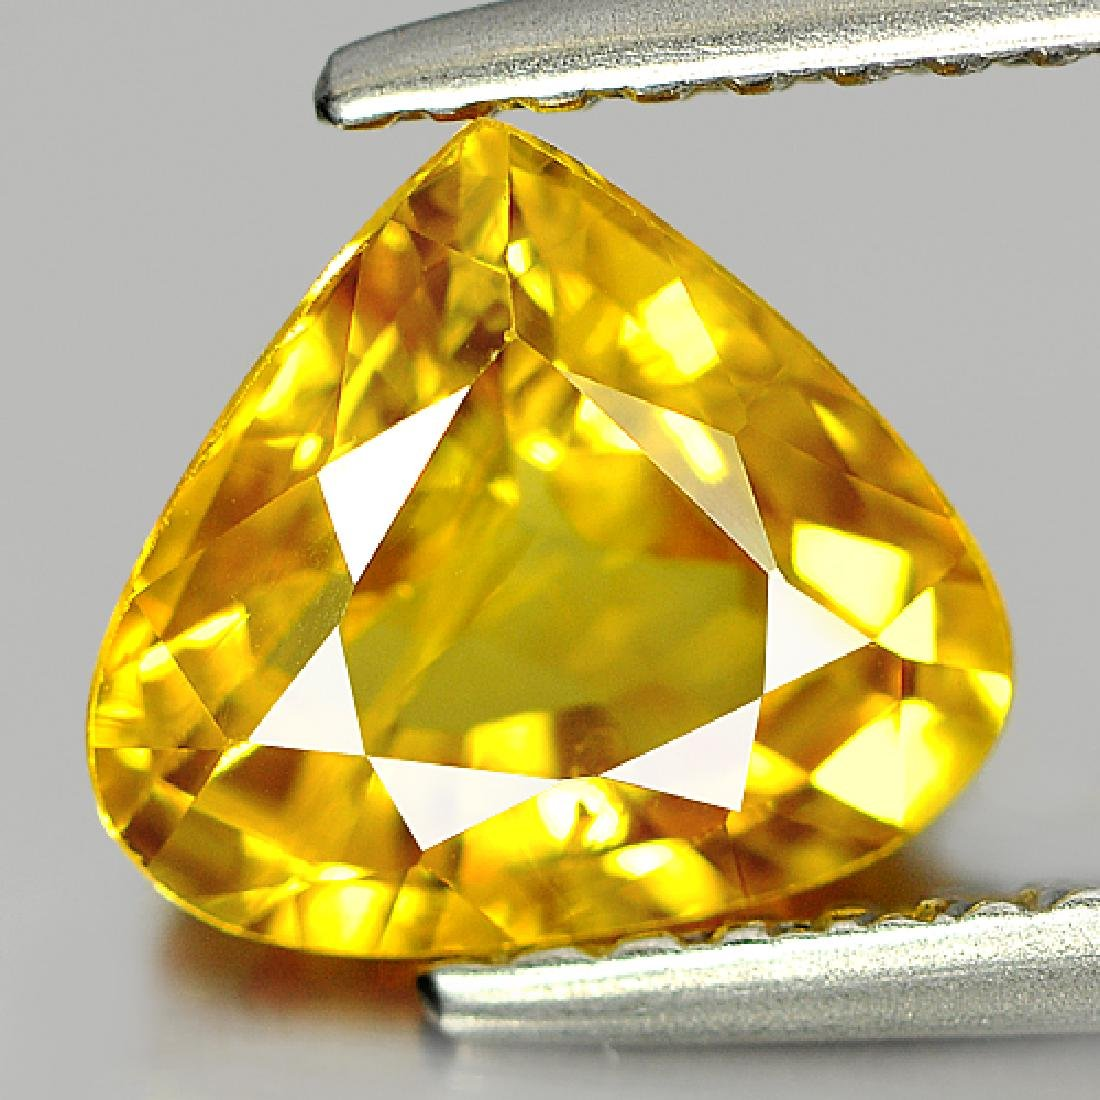 1.69 Ct Yellow Sapphire Pear Shape From Thailand - 2